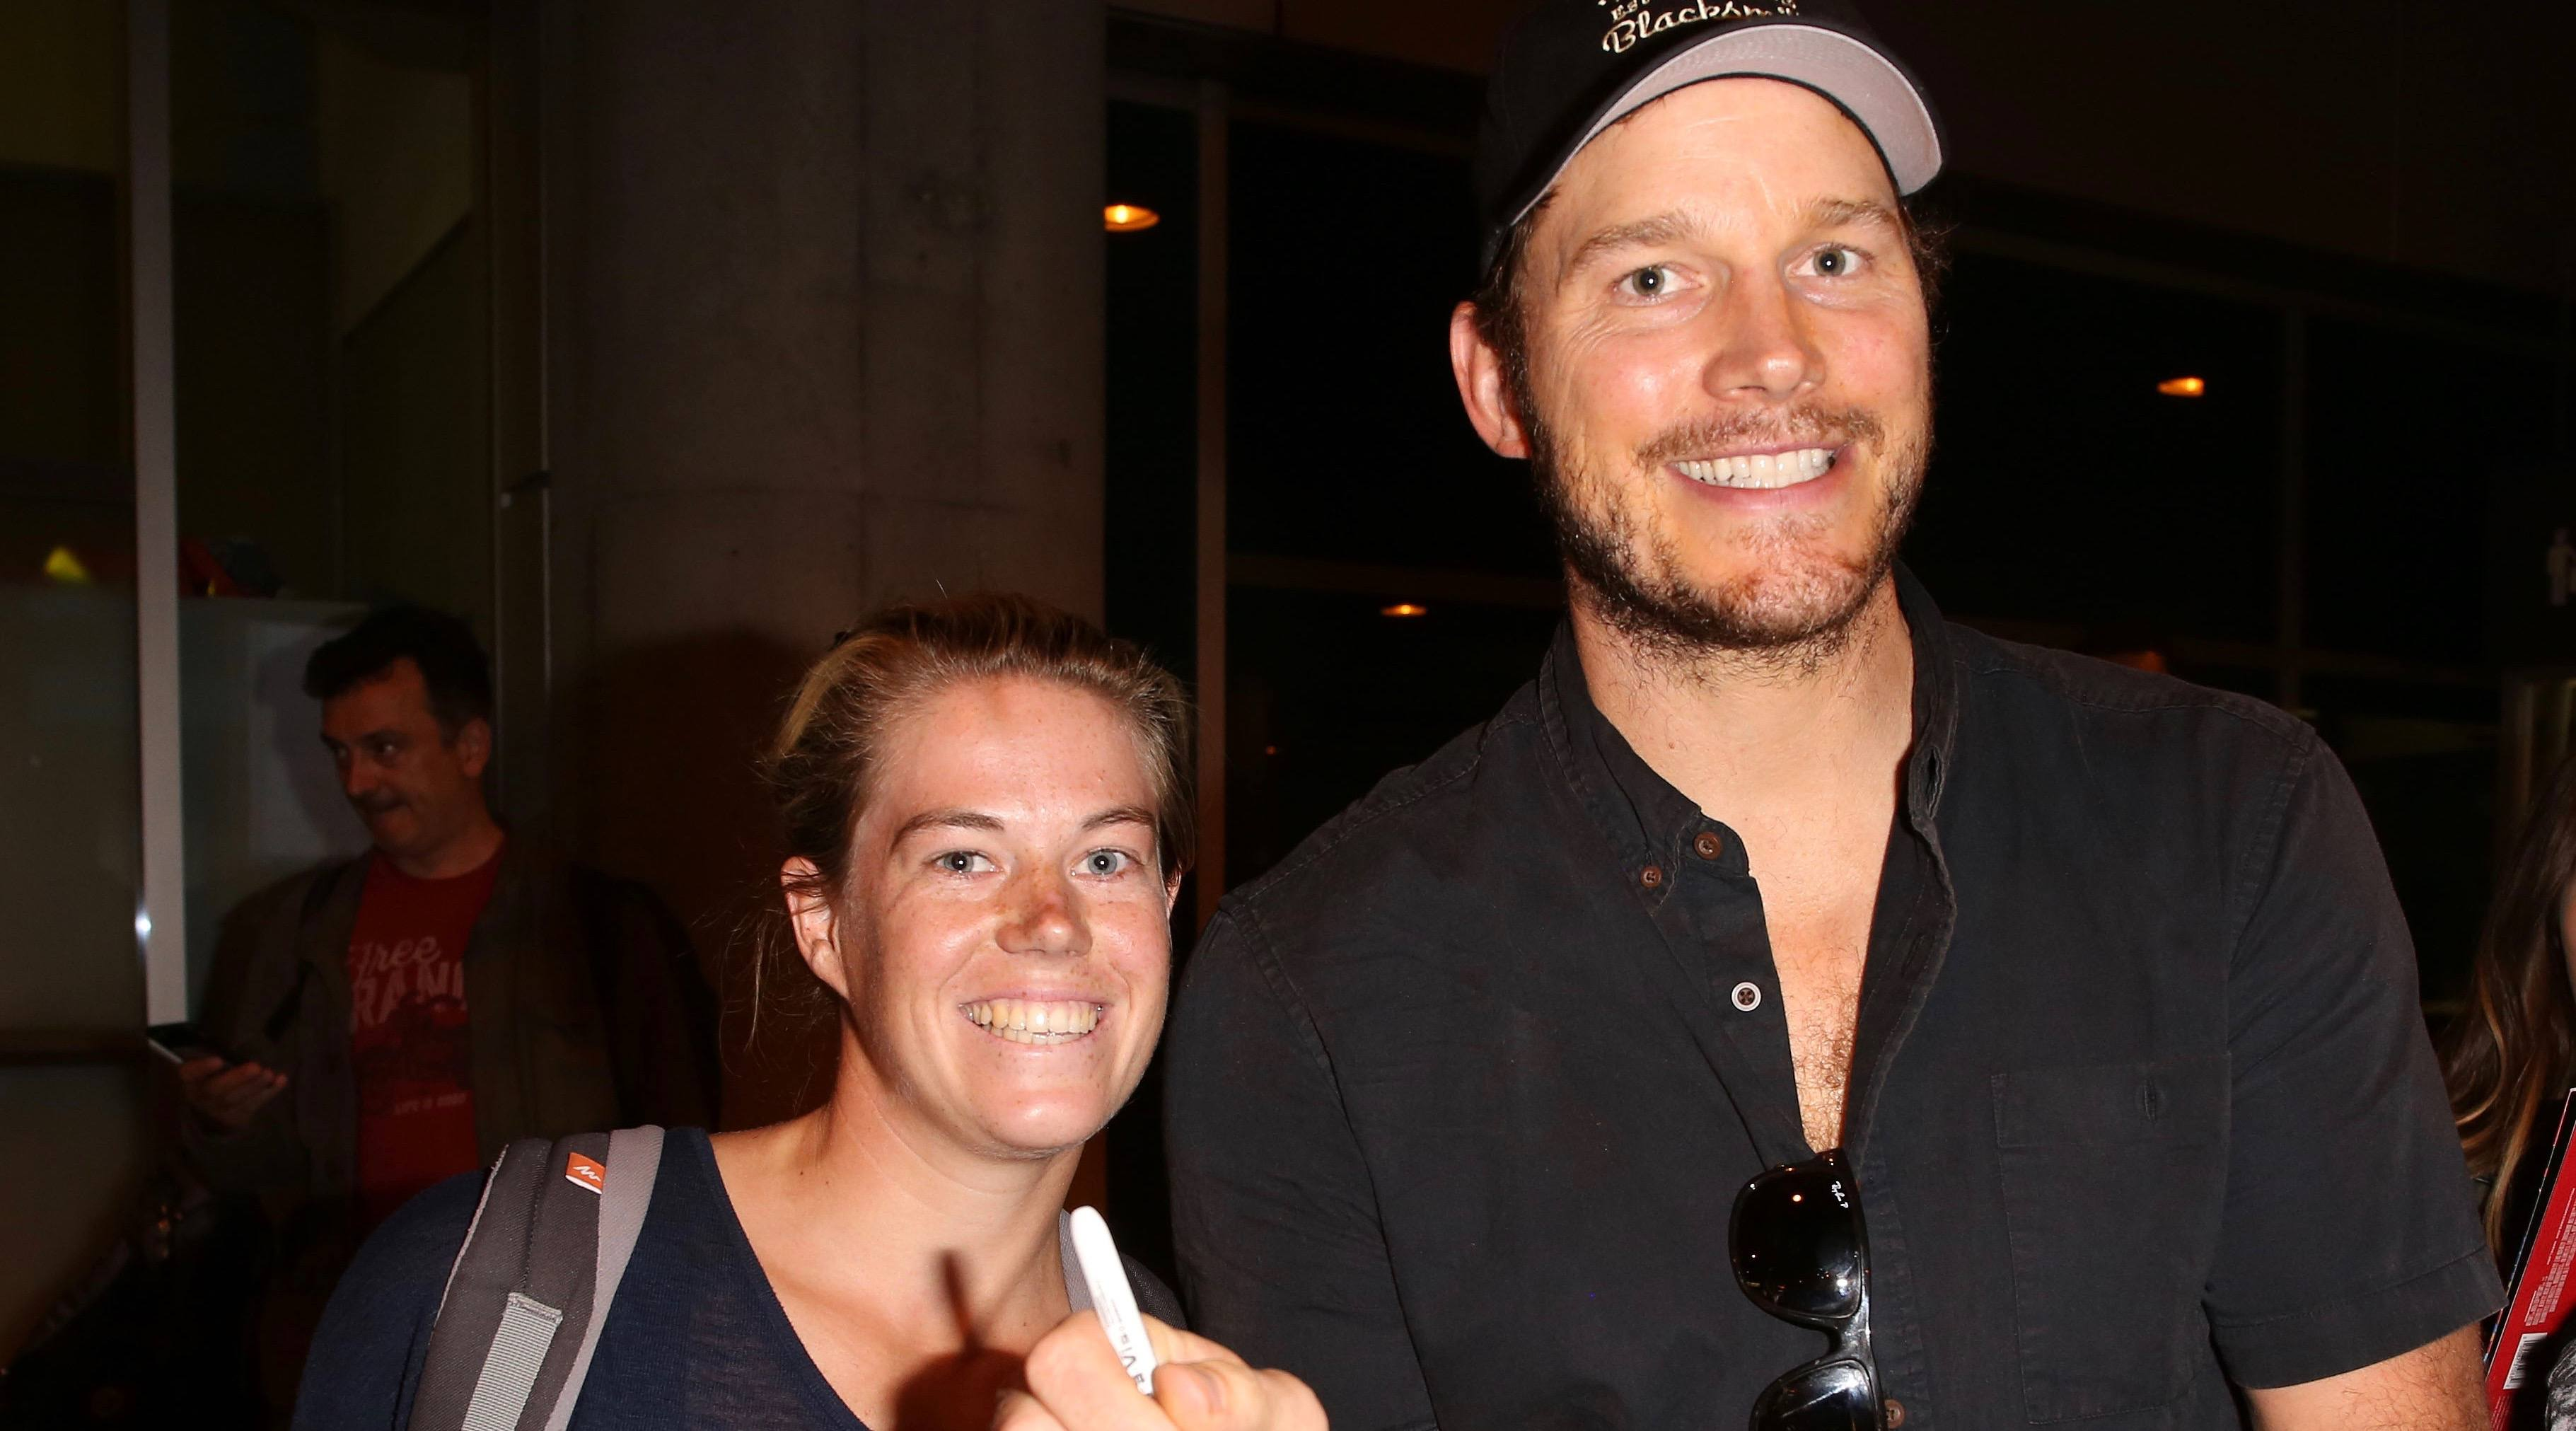 Chris Pratt and other stars arrive in Toronto, are quickly mobbed by fans (PHOTOS)